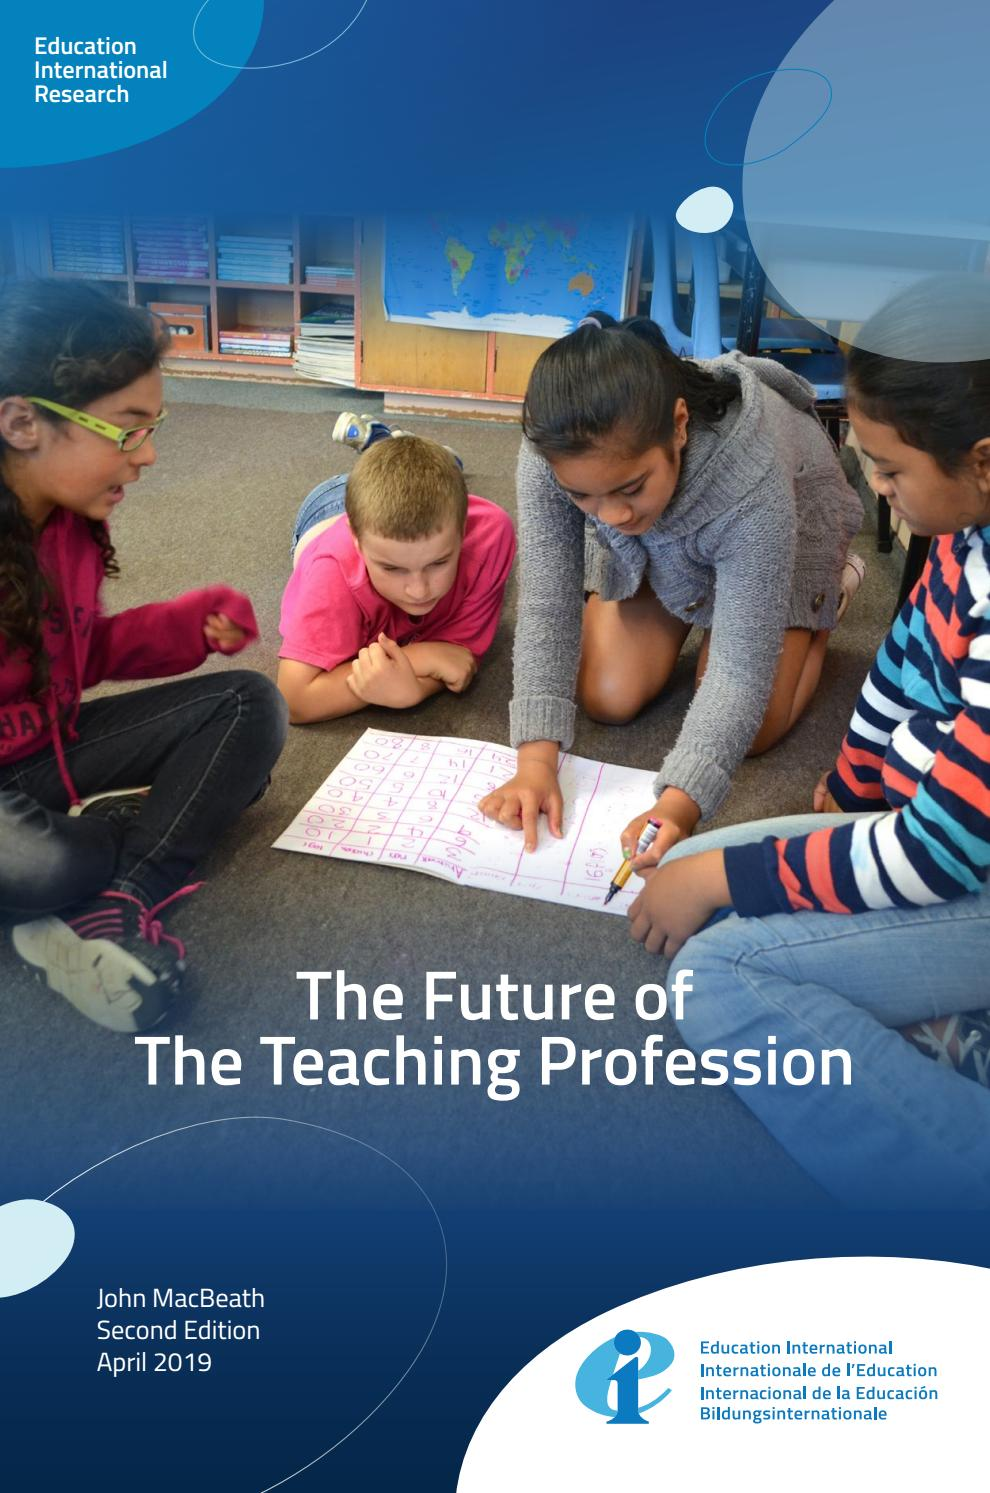 Teaching financial wisdom in schools is making progress, but requires a systematic approach